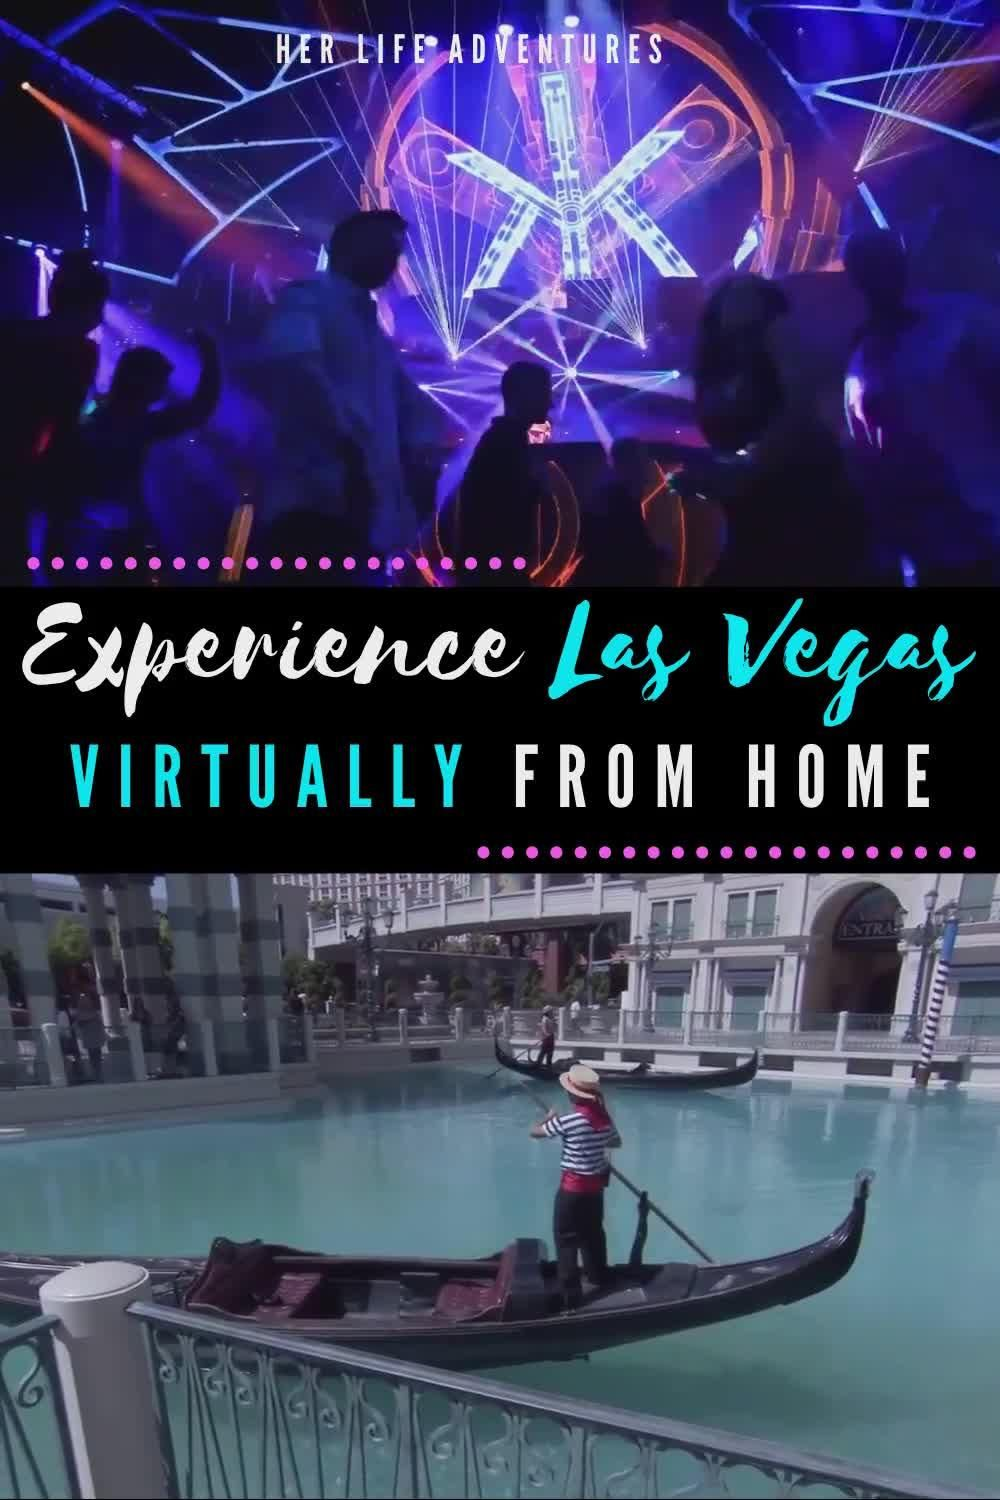 The Best Virtual Las Vegas Vacation